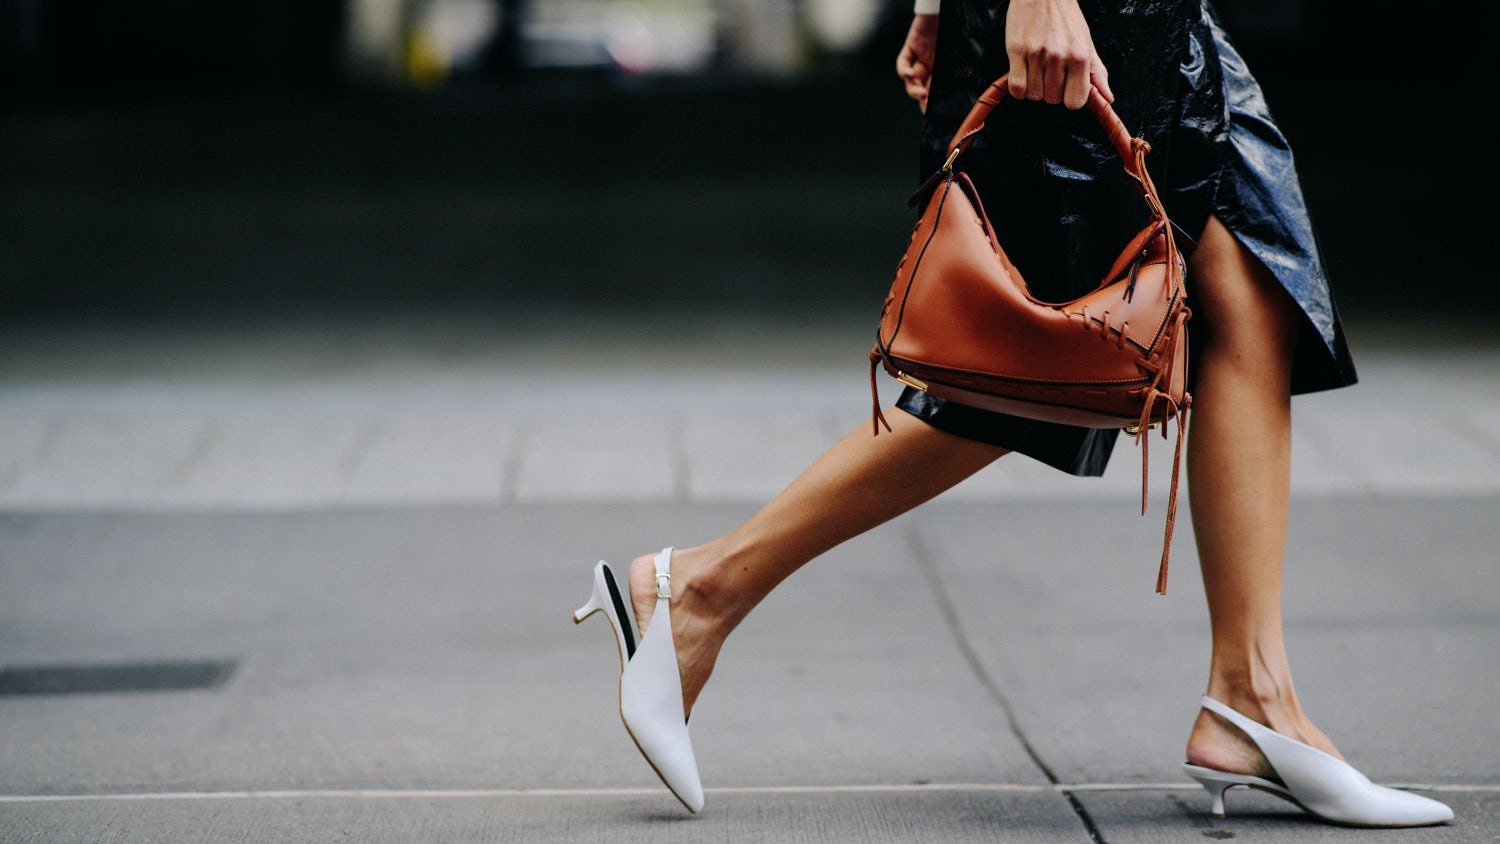 Linda Tol wears Tibi heels at New York Fashion Week in September | Source: Adam Katz Sinding